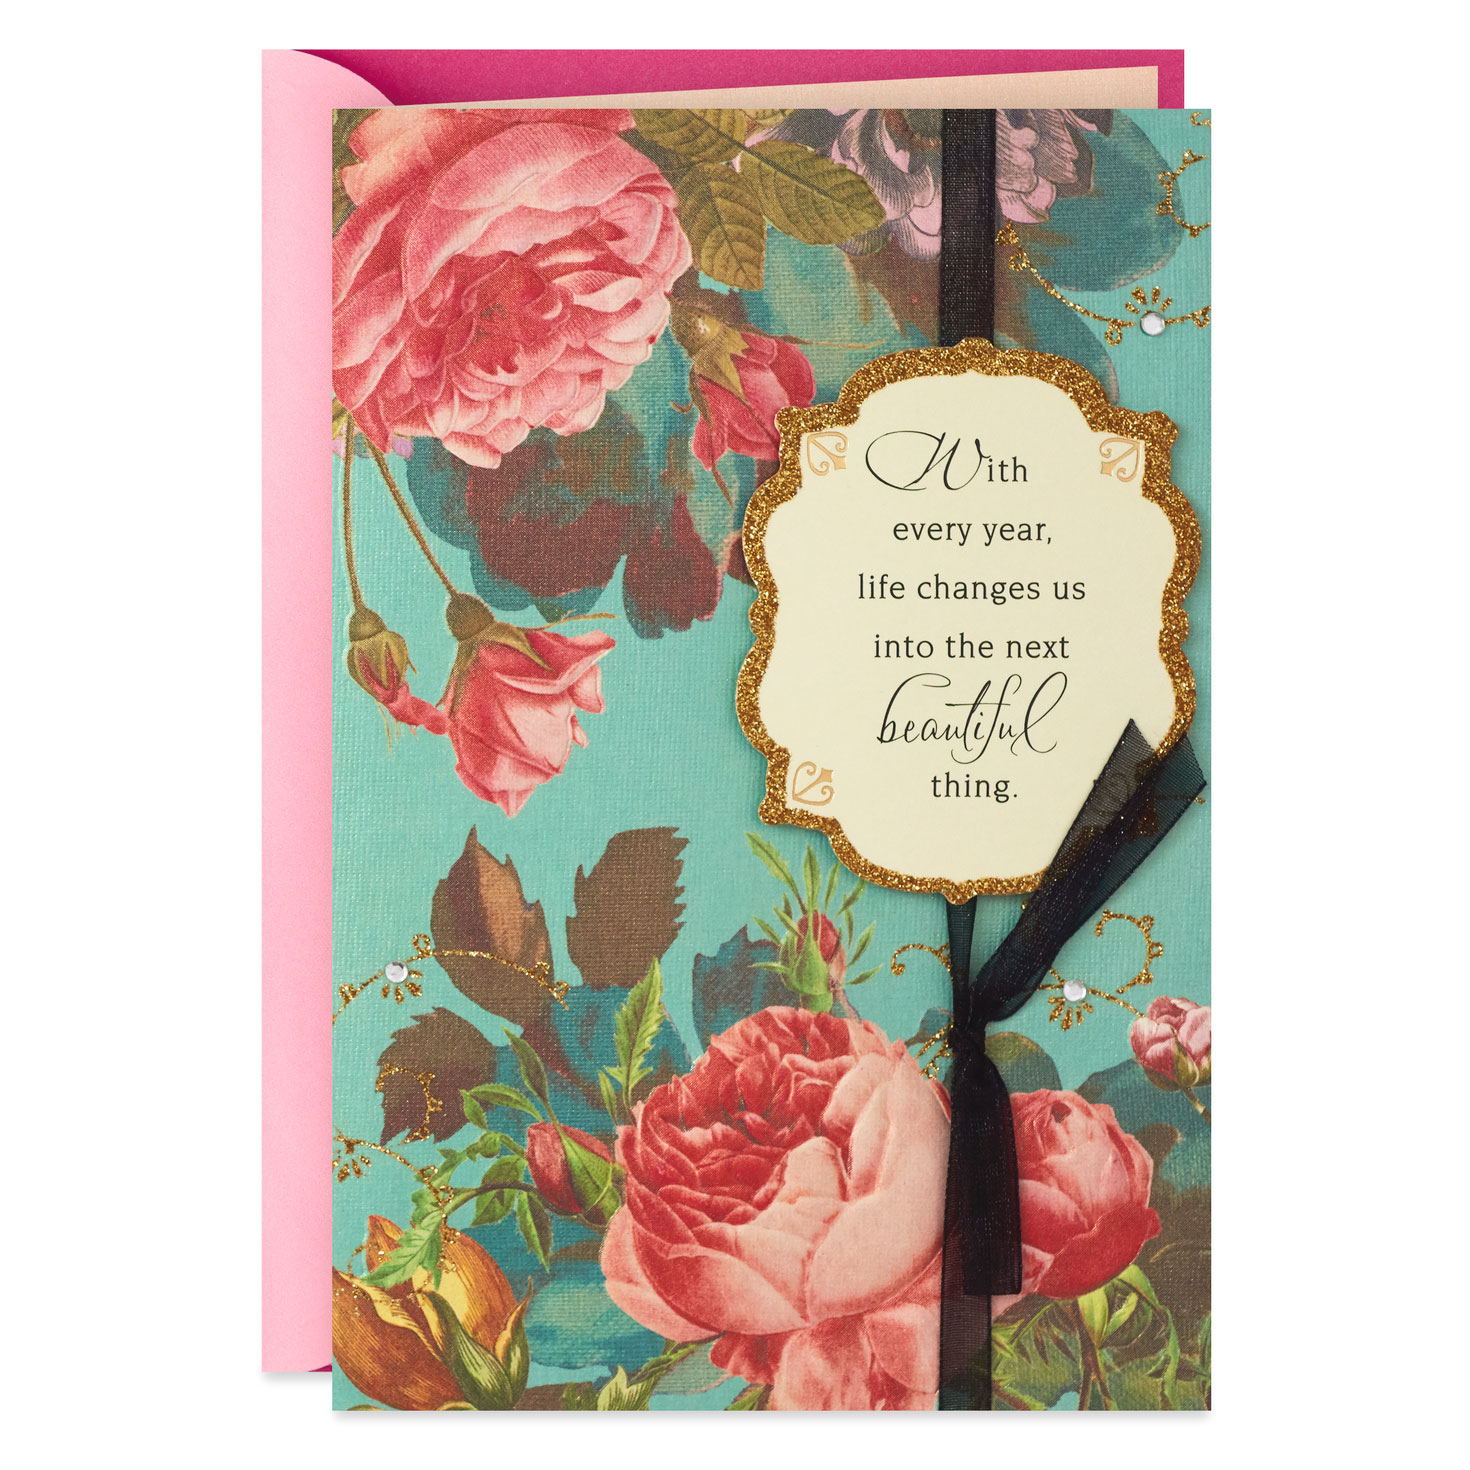 Floral Wedding Logo Collection: Beautiful Thing Vintage Floral Birthday Card